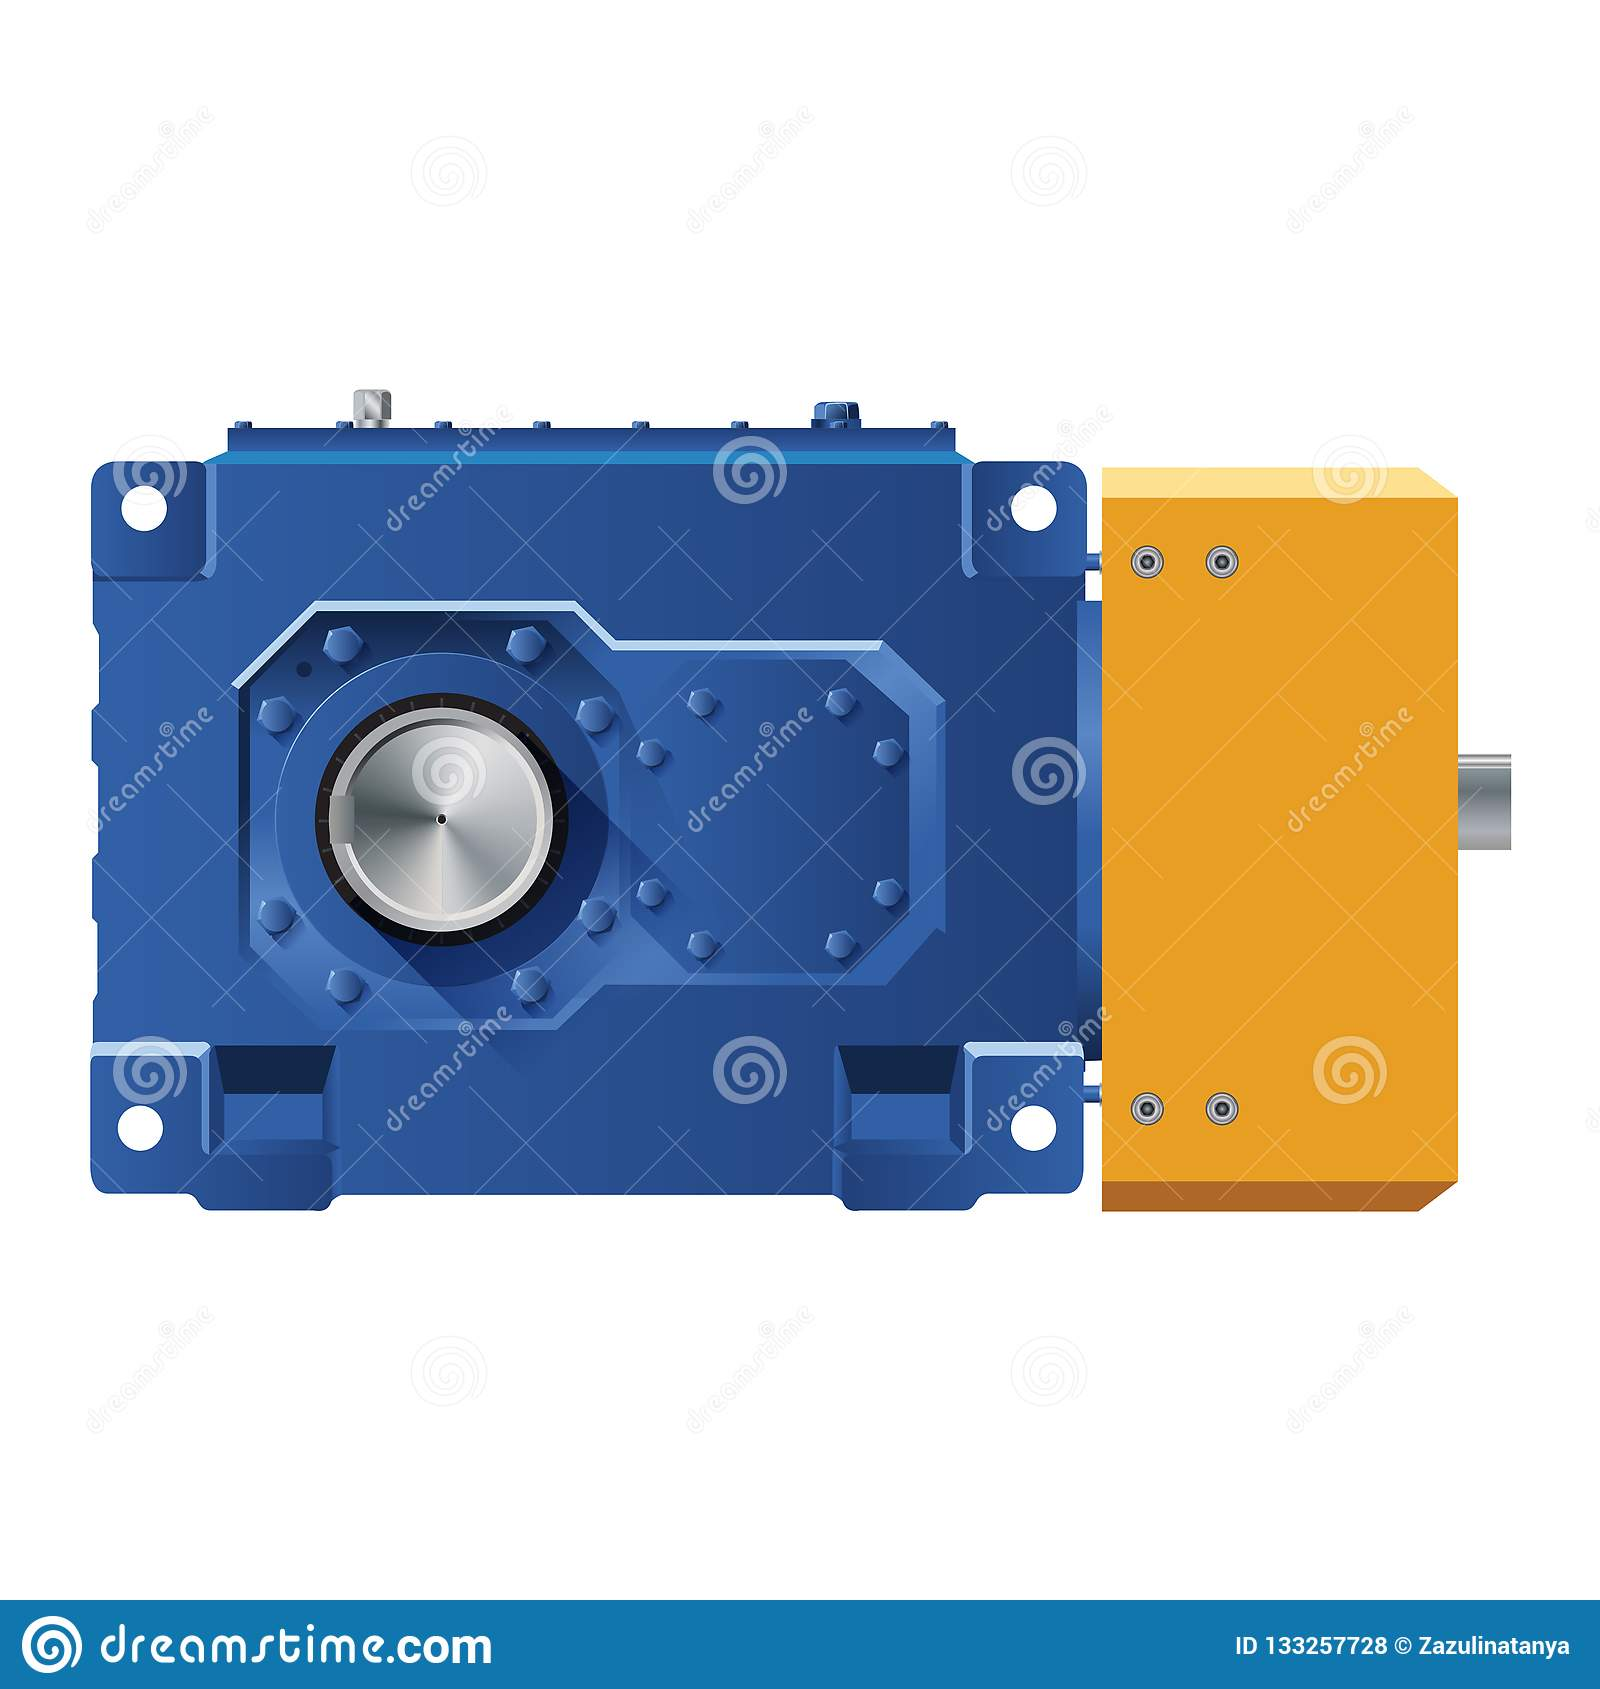 Bevel-helical Gearbox With Cooling  Vector Illustration  For